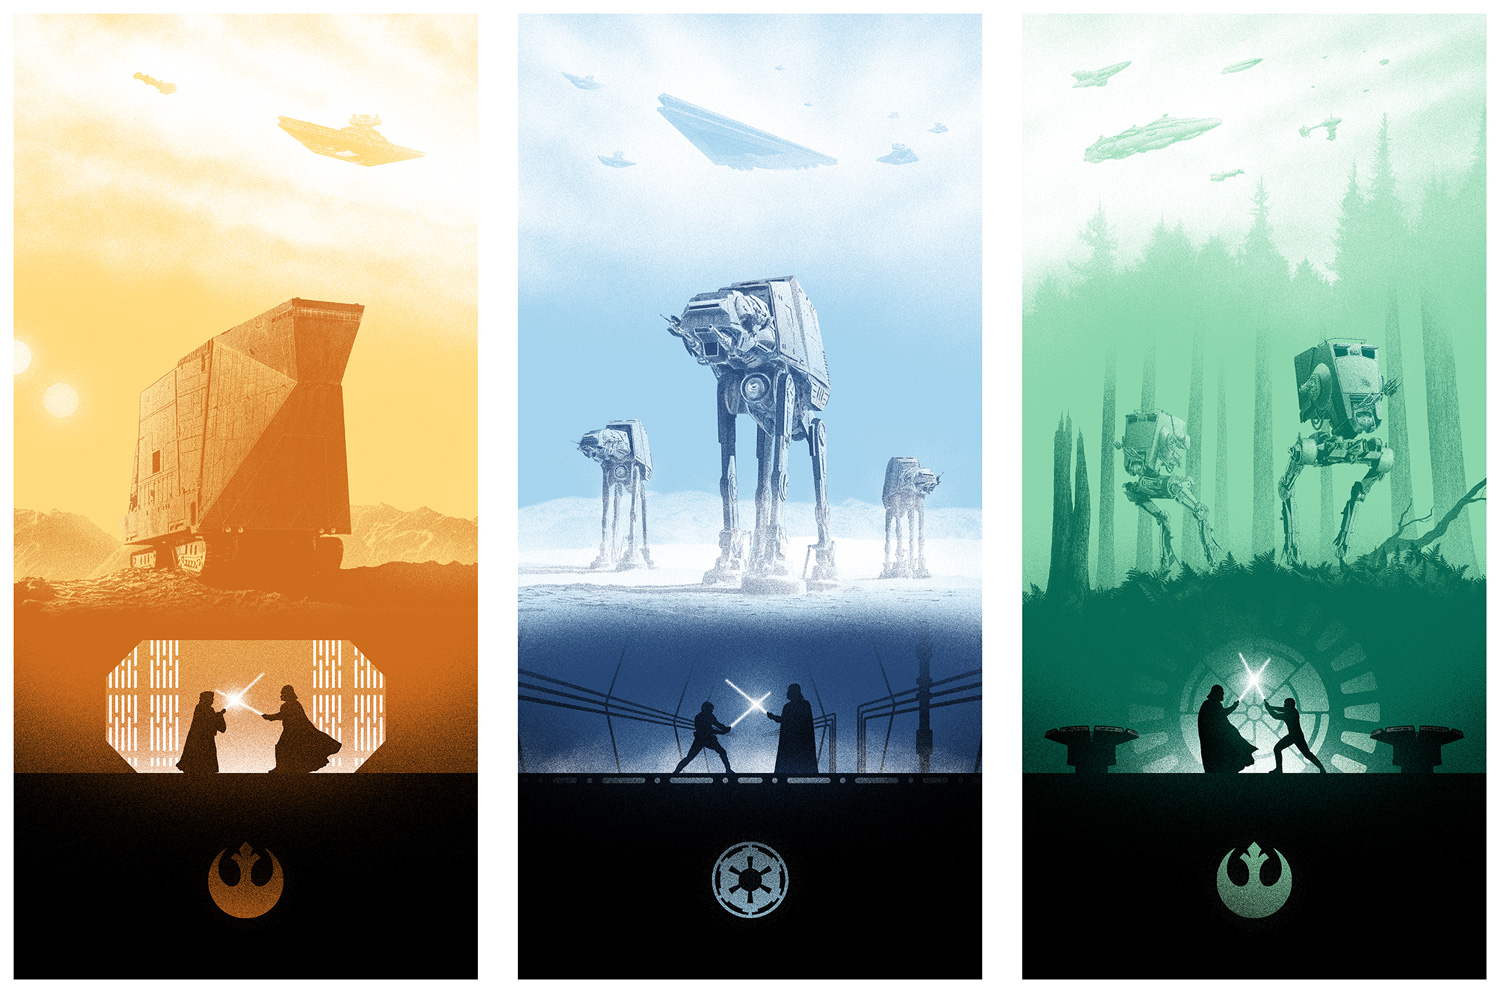 star wars trilogy triptych by marko manev 411posters. Black Bedroom Furniture Sets. Home Design Ideas